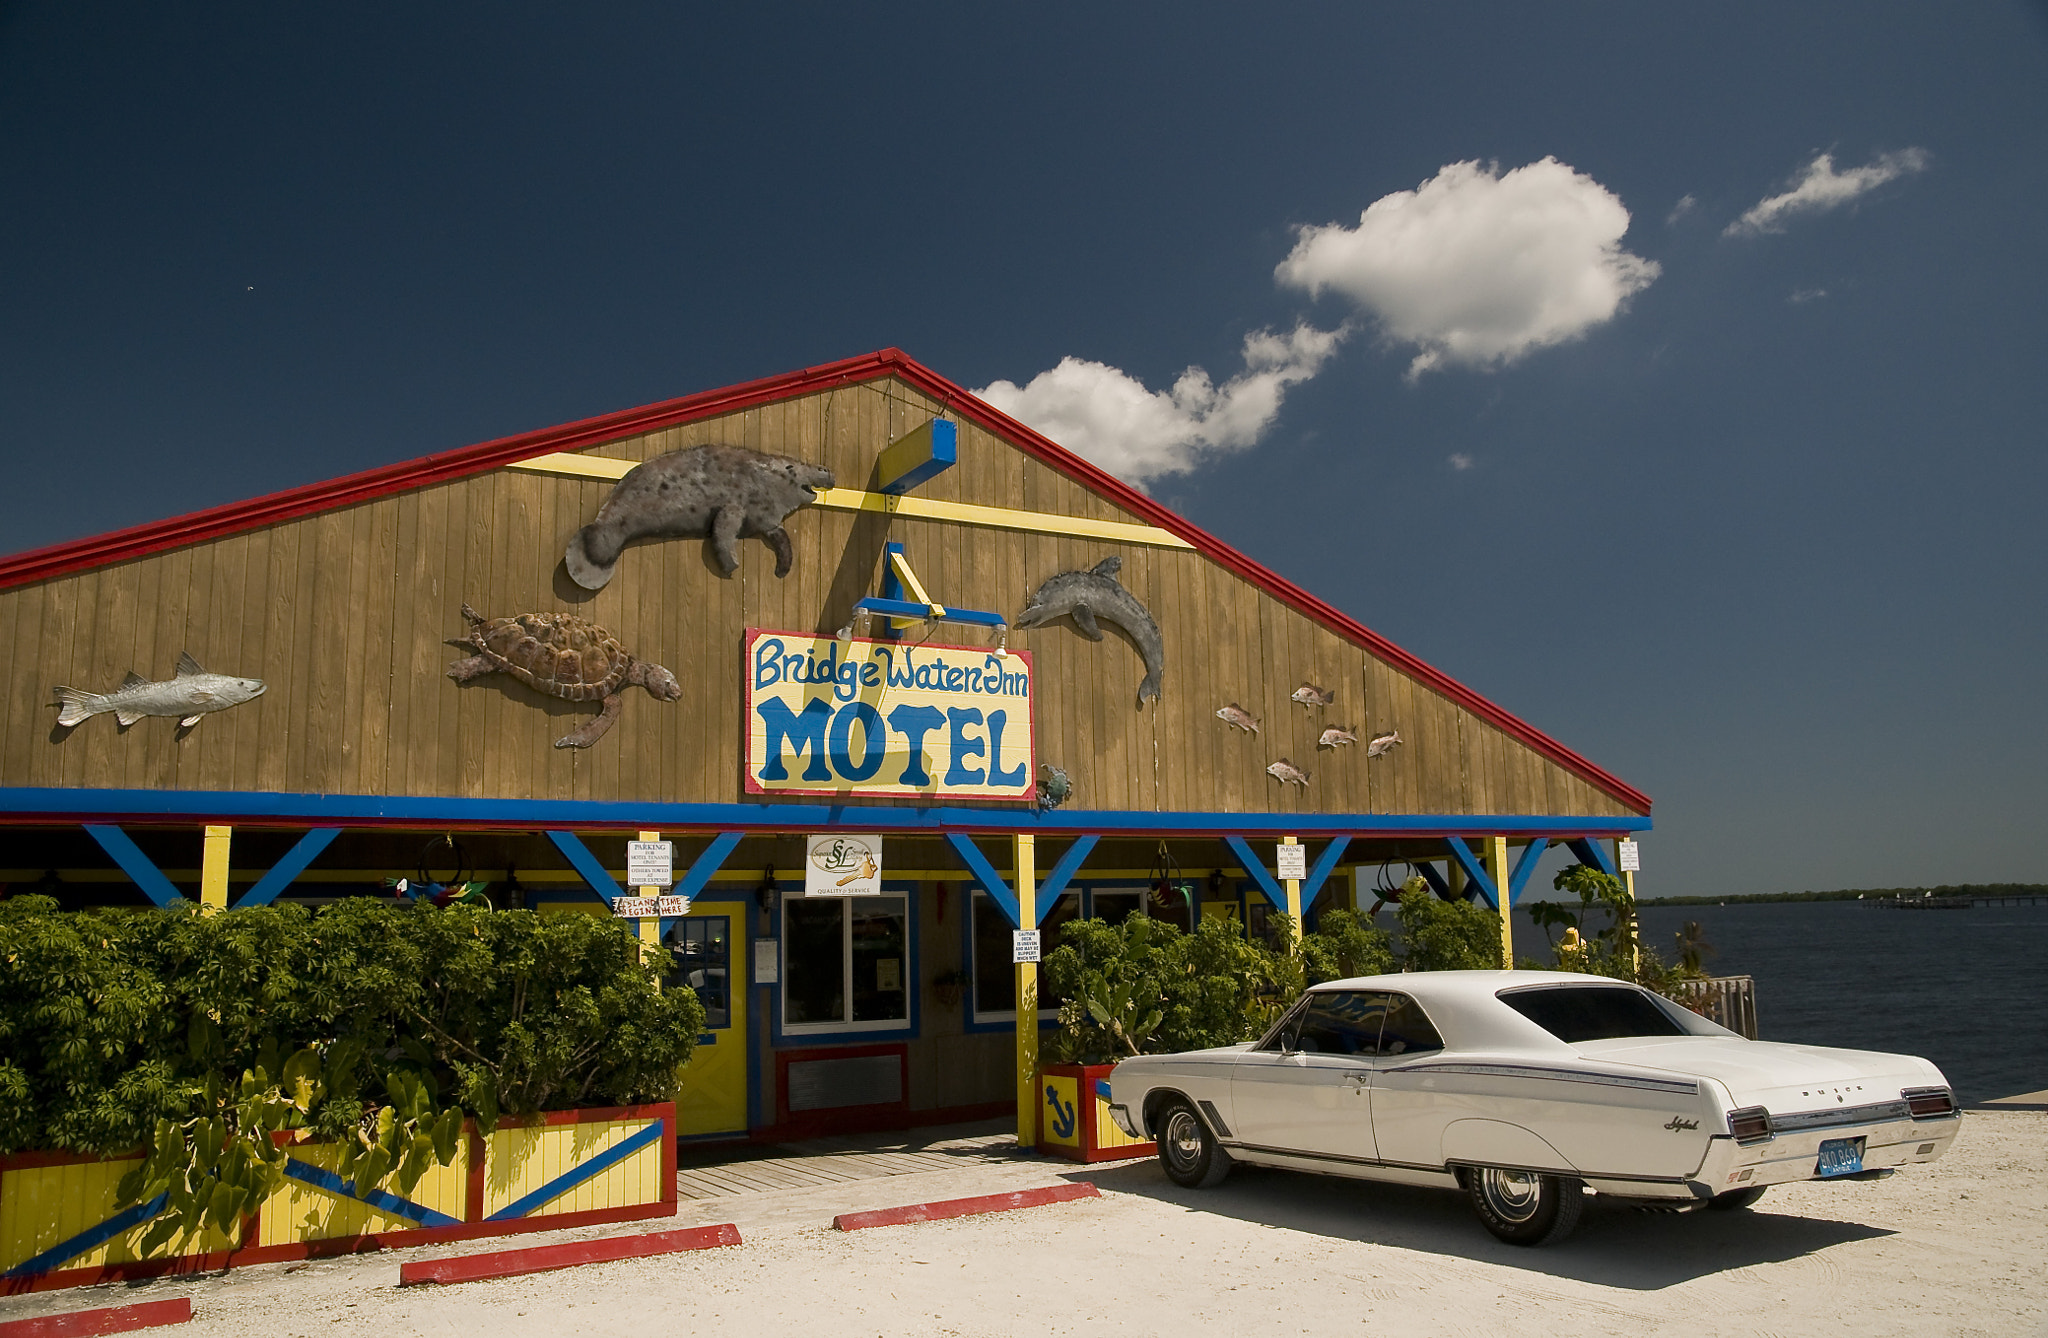 Photograph Bridgewater Motel Matlacha, Florida by Bert Kohlgraf on 500px